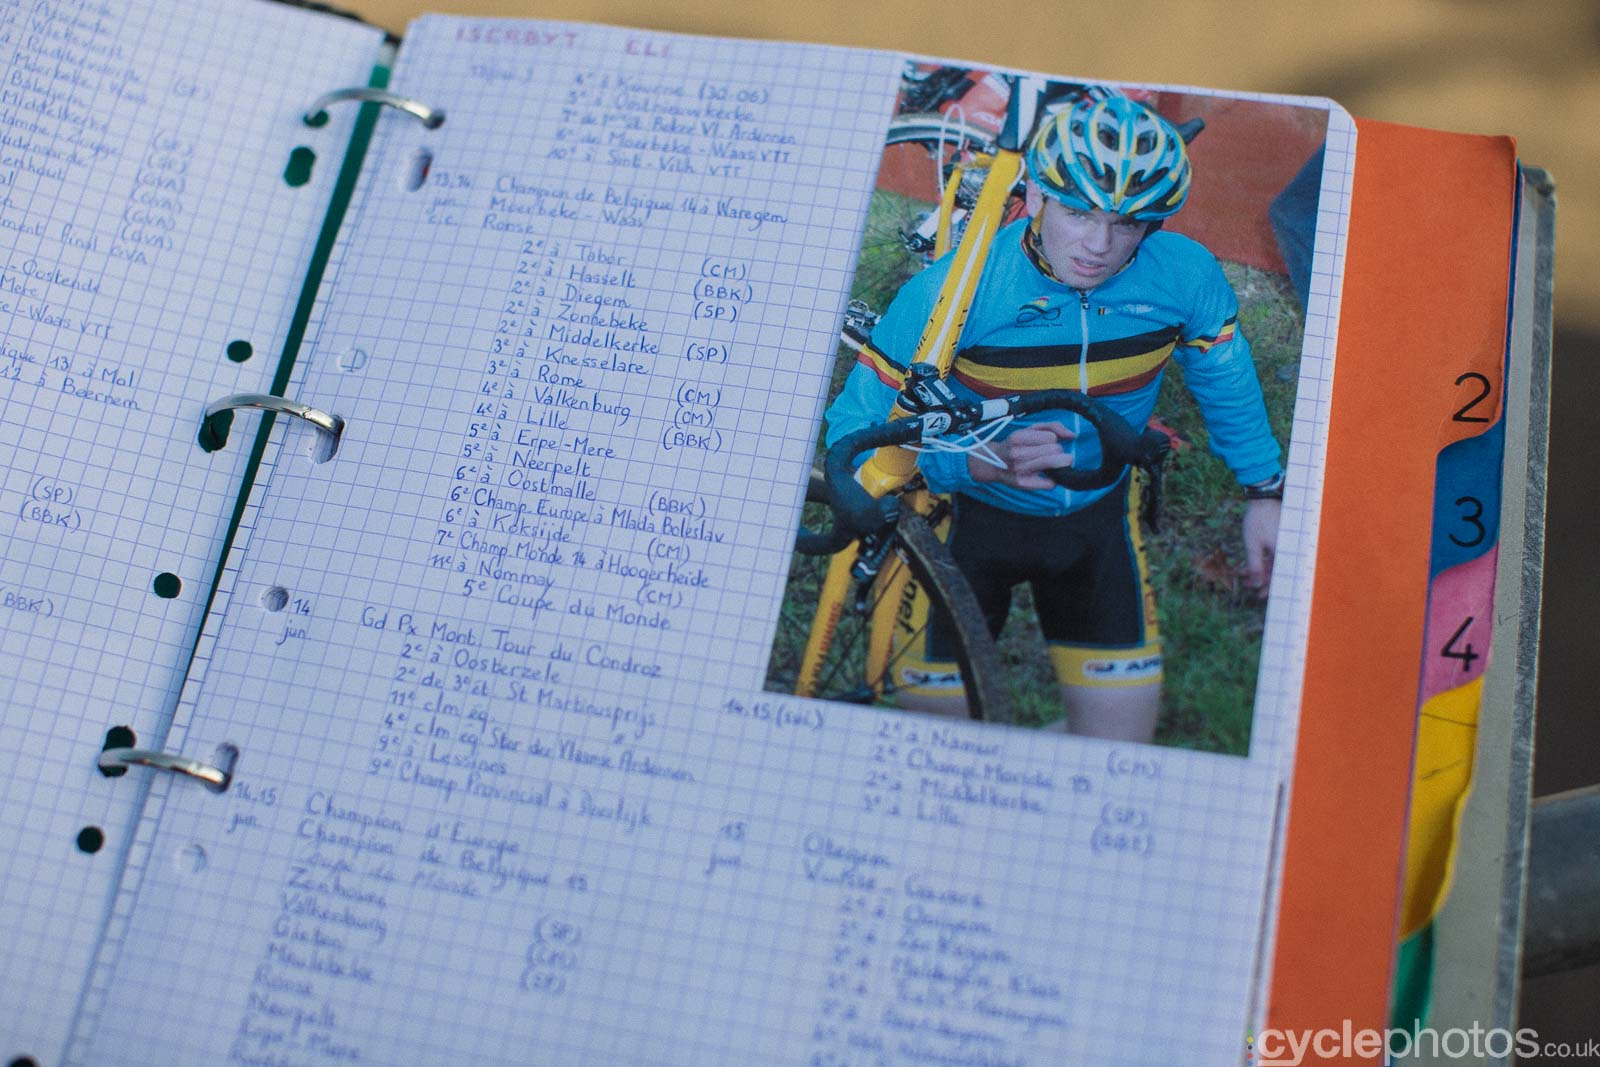 2016-cyclephotos-cyclocross-lignieres-121439-supporters-book